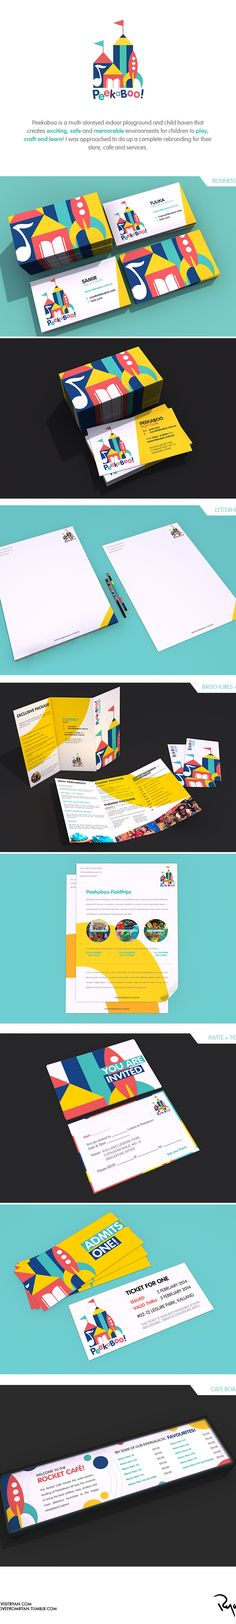 https://www.behance.net/gallery/14742209/Peekaboo-Playhouse-Identity-Design